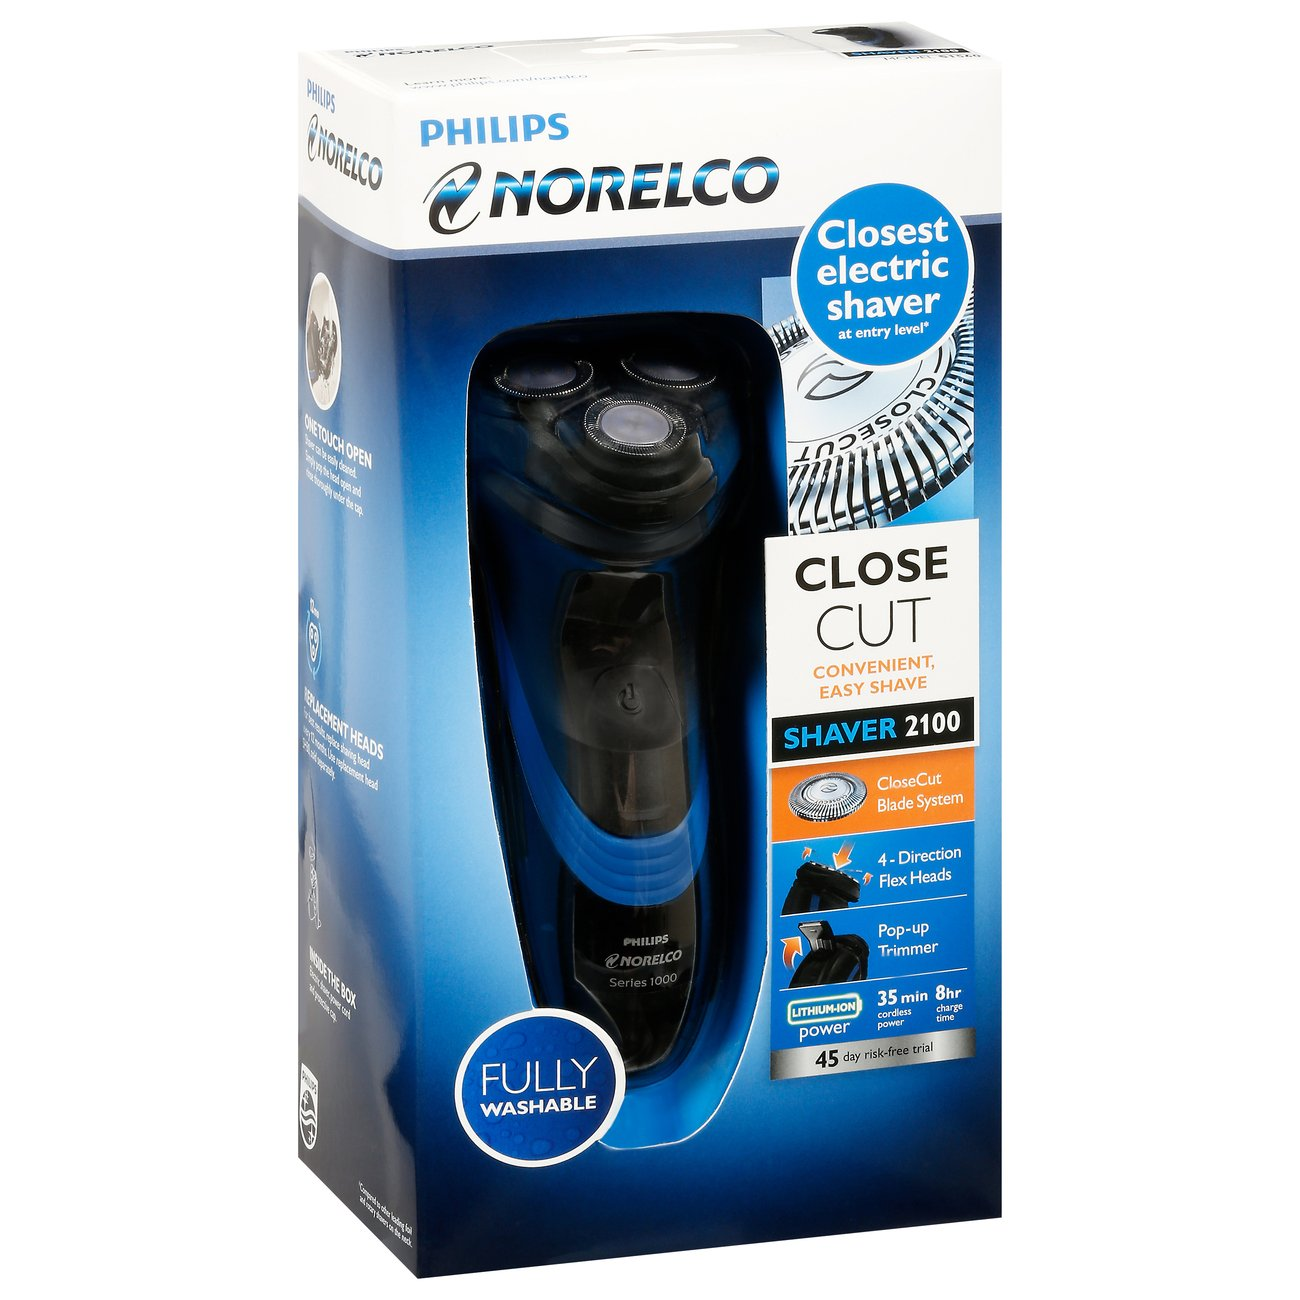 Hair shaver clippers razor beard trimmer - Philips Norelco Electric Rechargeable Shaver 2100